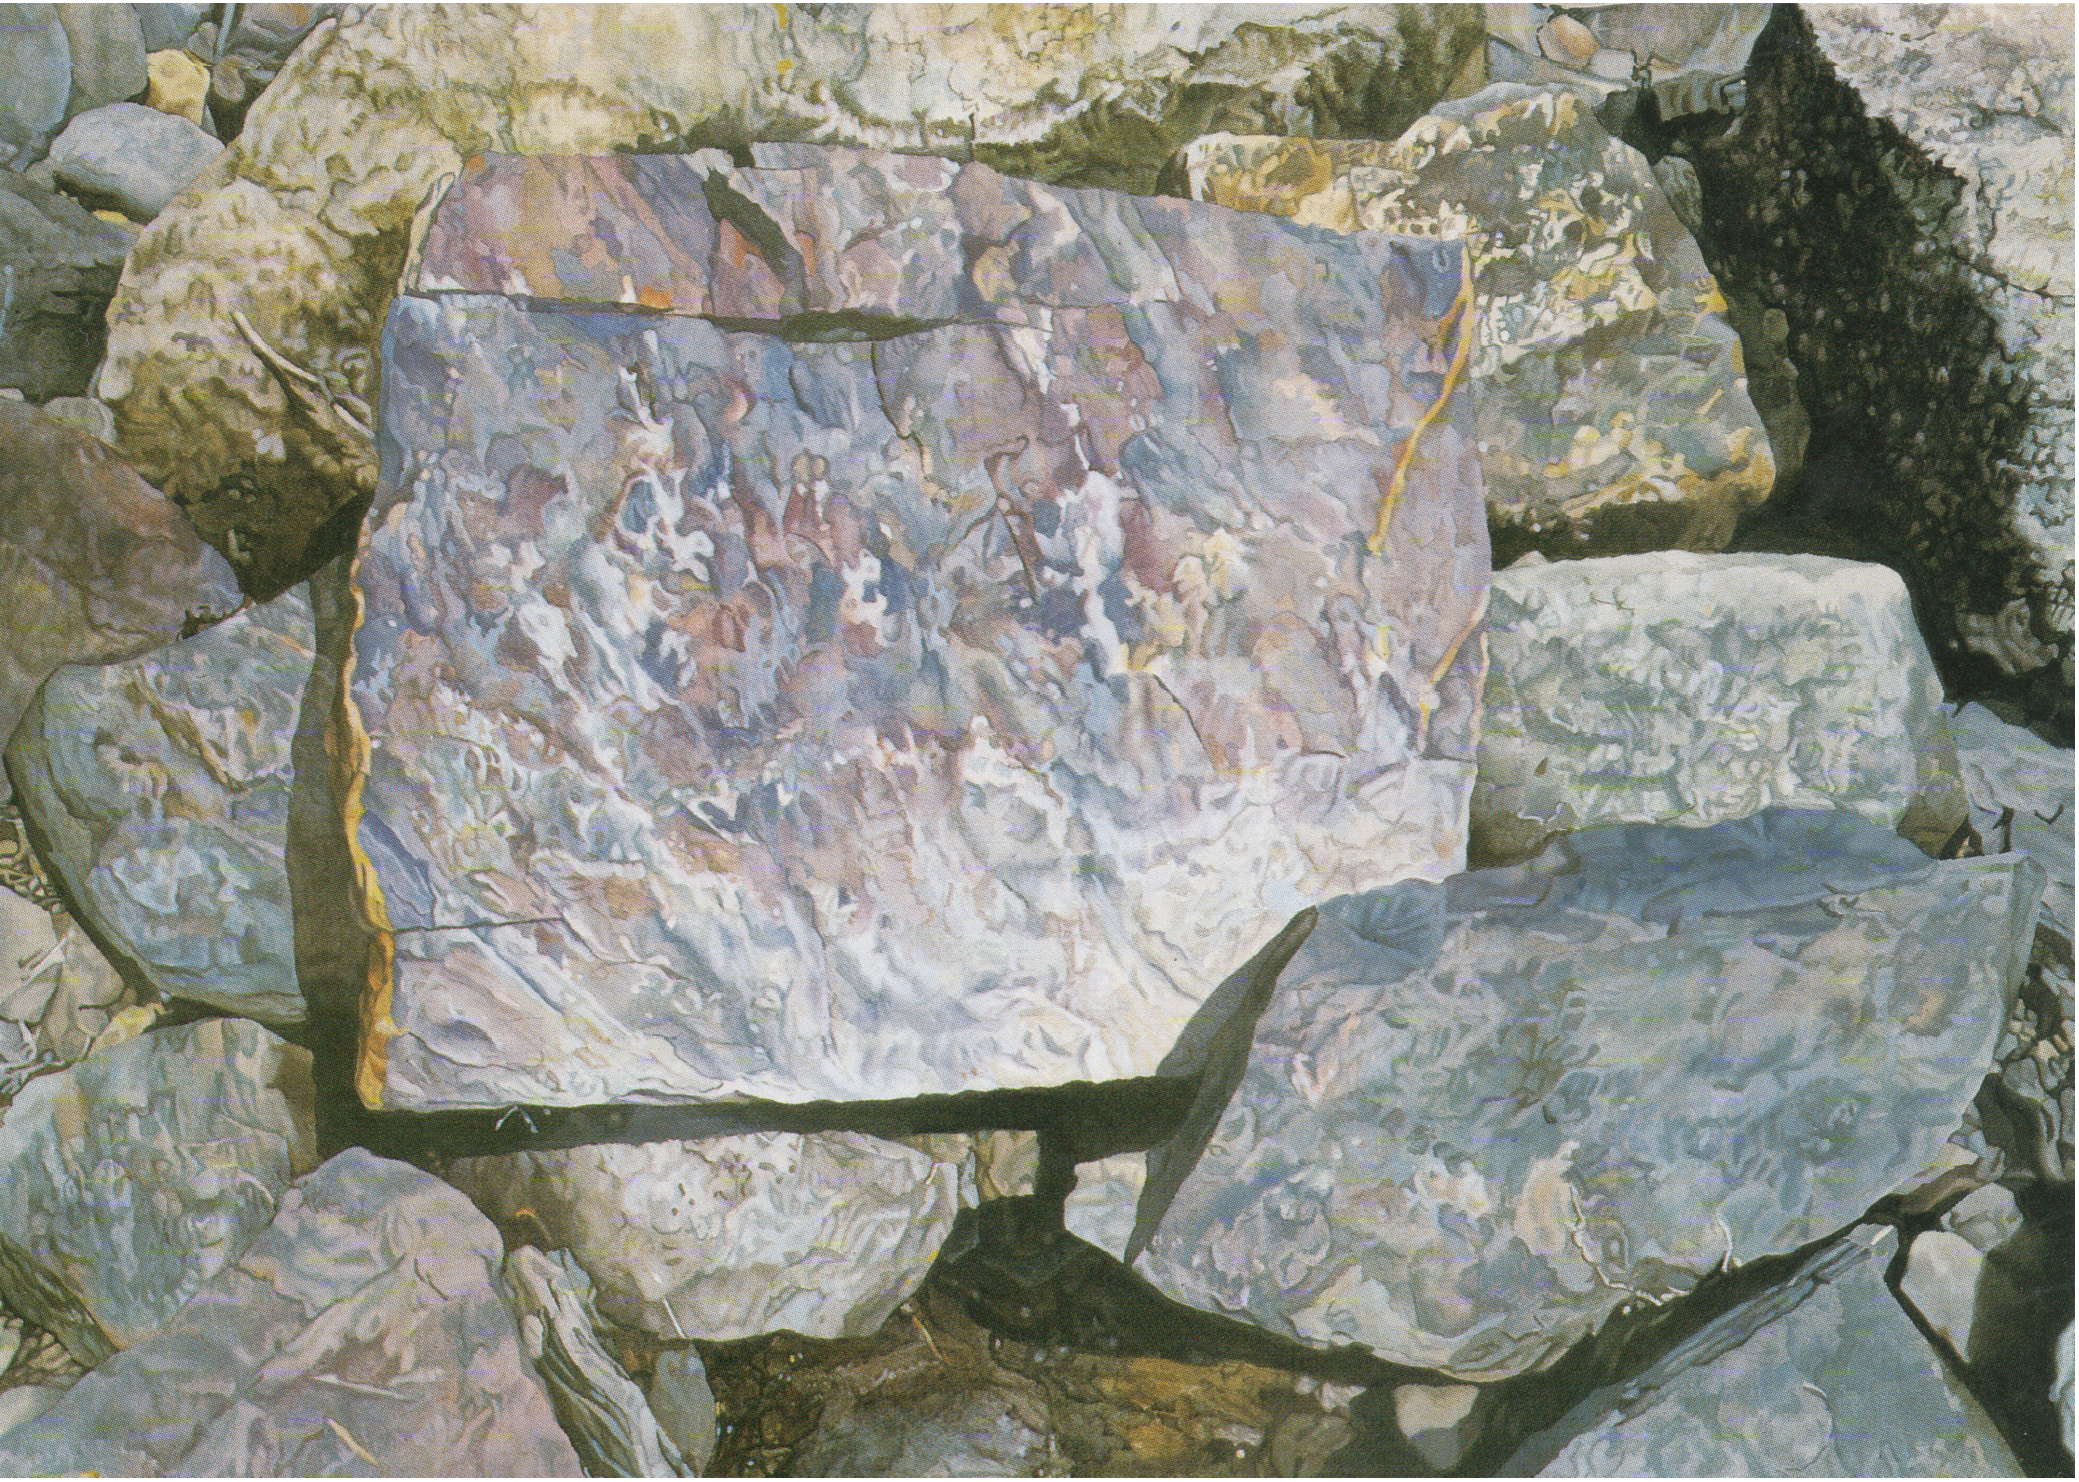 Rocks in Arey's Cove I